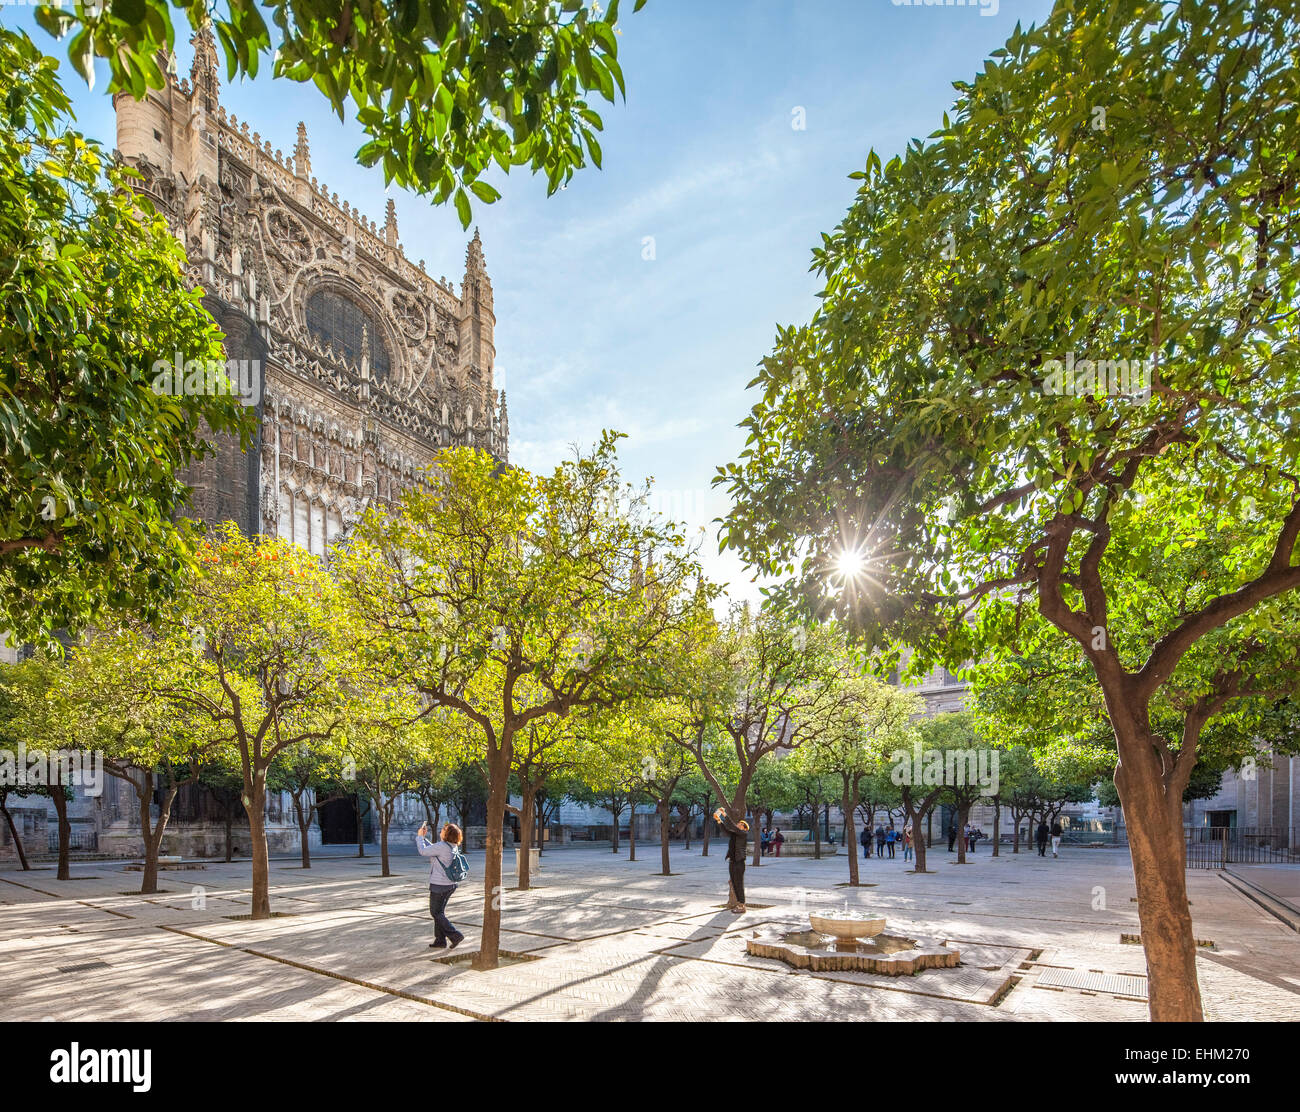 seville-sevilla-spain-catedral-cathedral